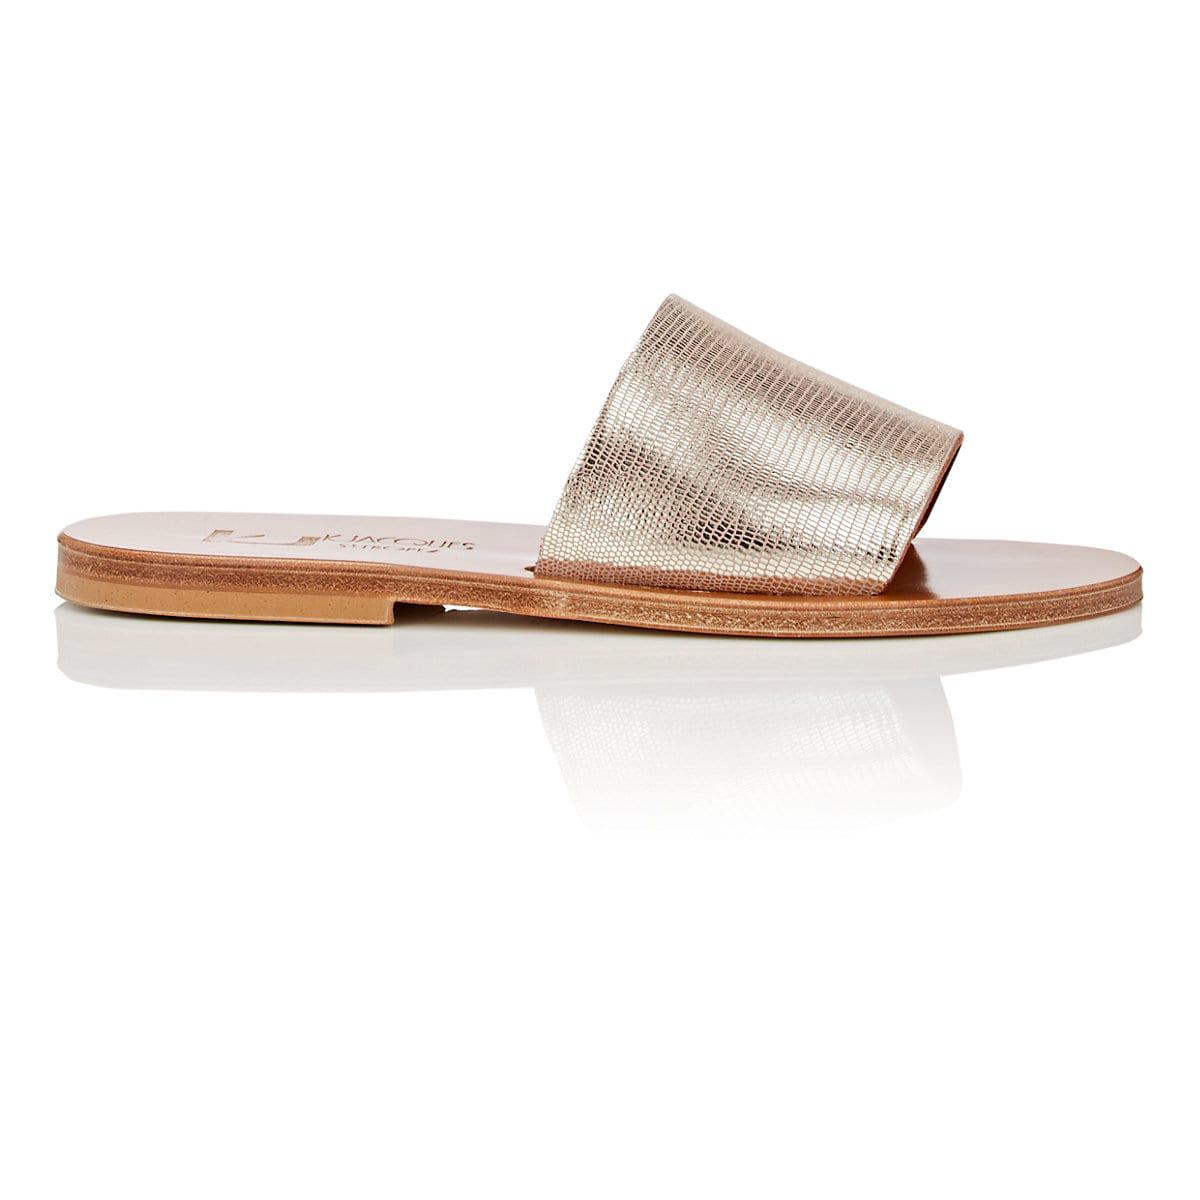 get to buy for sale outlet popular K JACQUES Monza Suede Slide Sandals free shipping authentic sale low shipping fee MmE1q